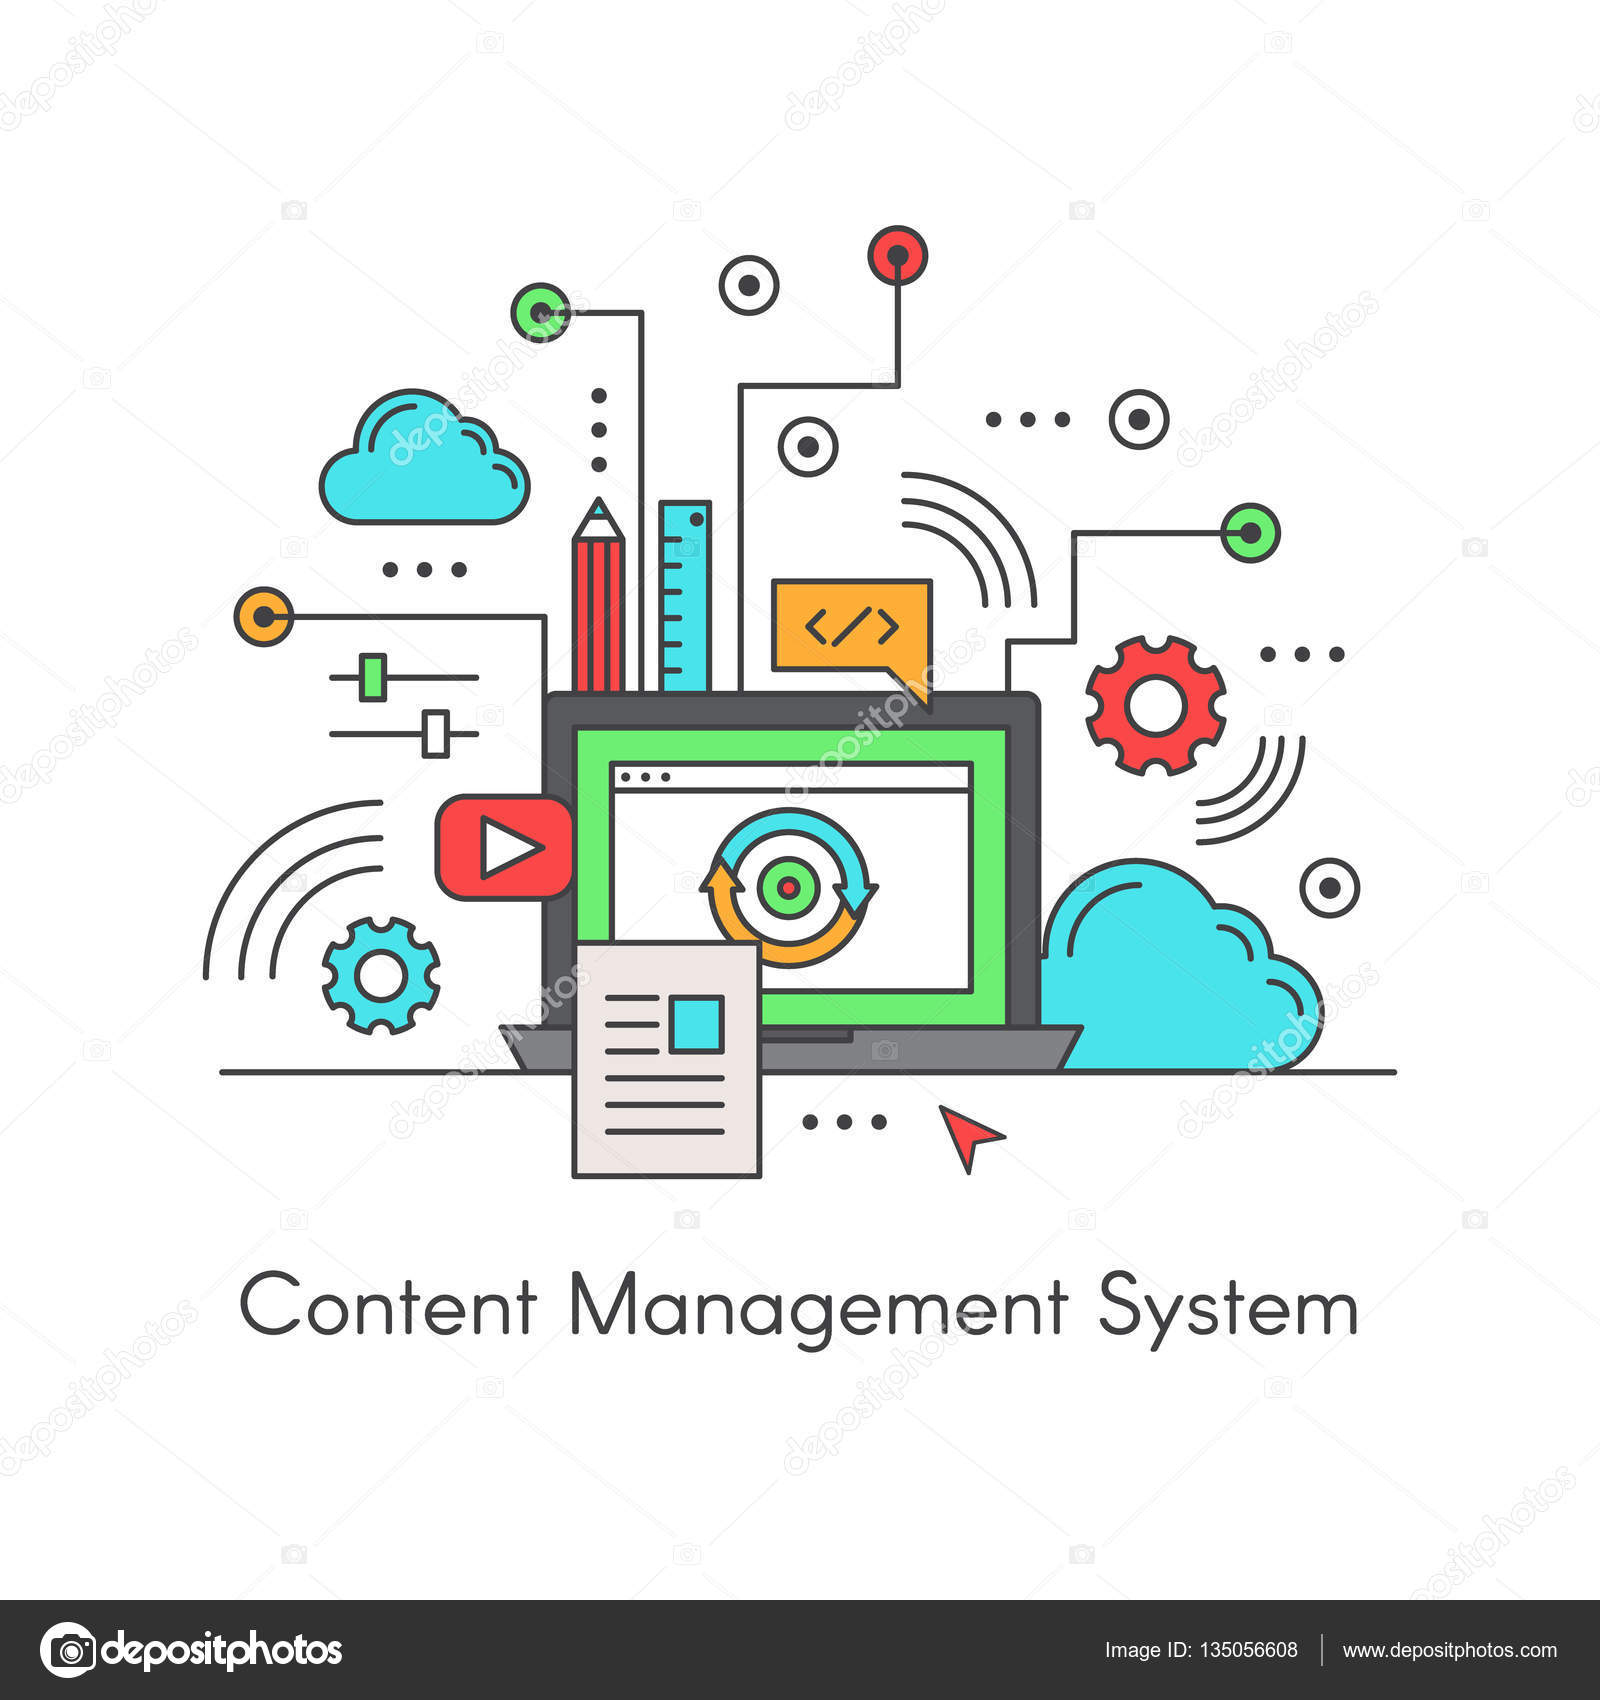 what is content management system pdf